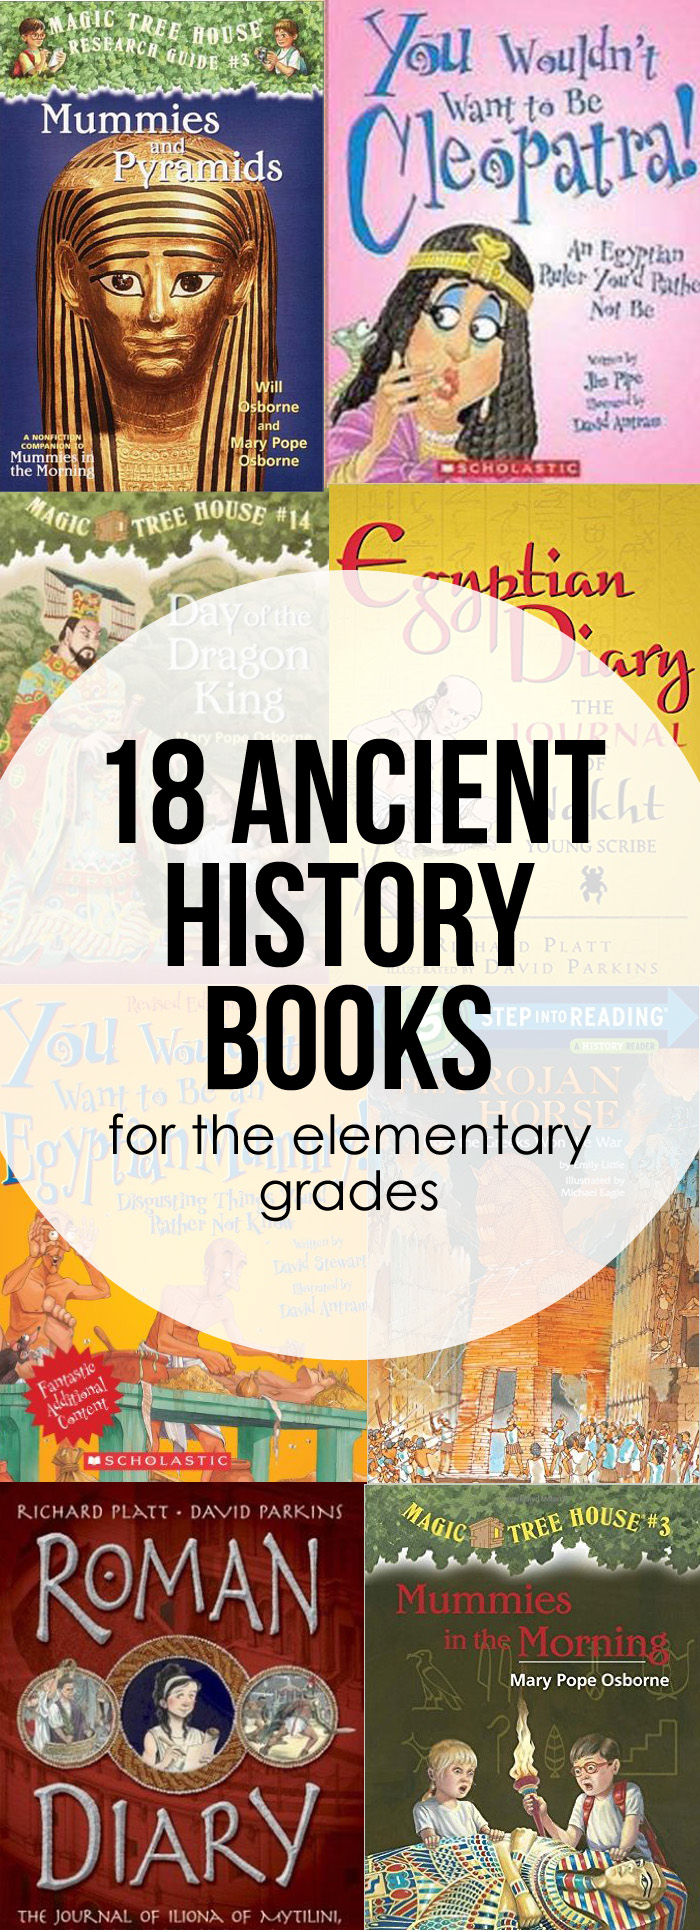 Ancient History Books for Elementary